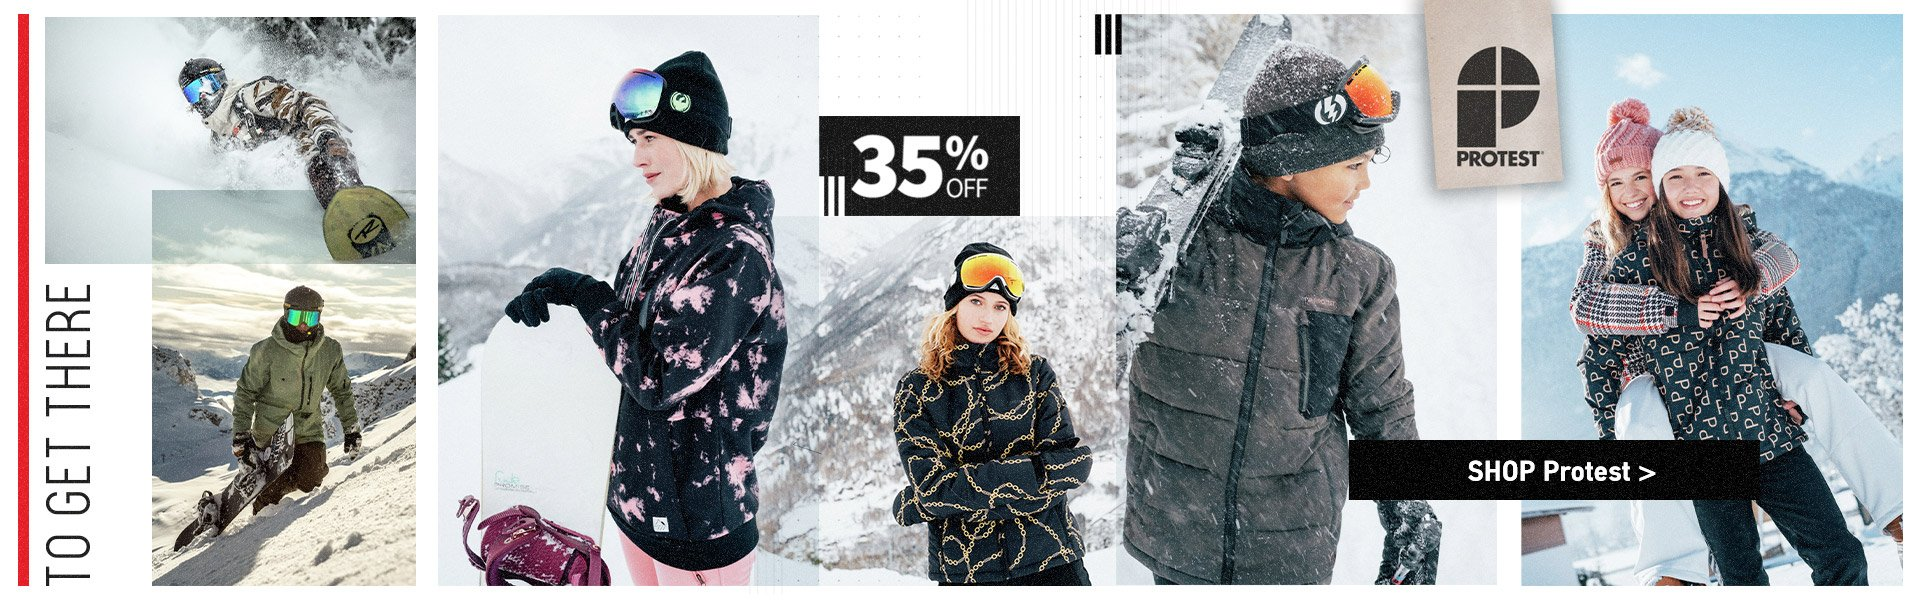 PROTEST 35% OFF